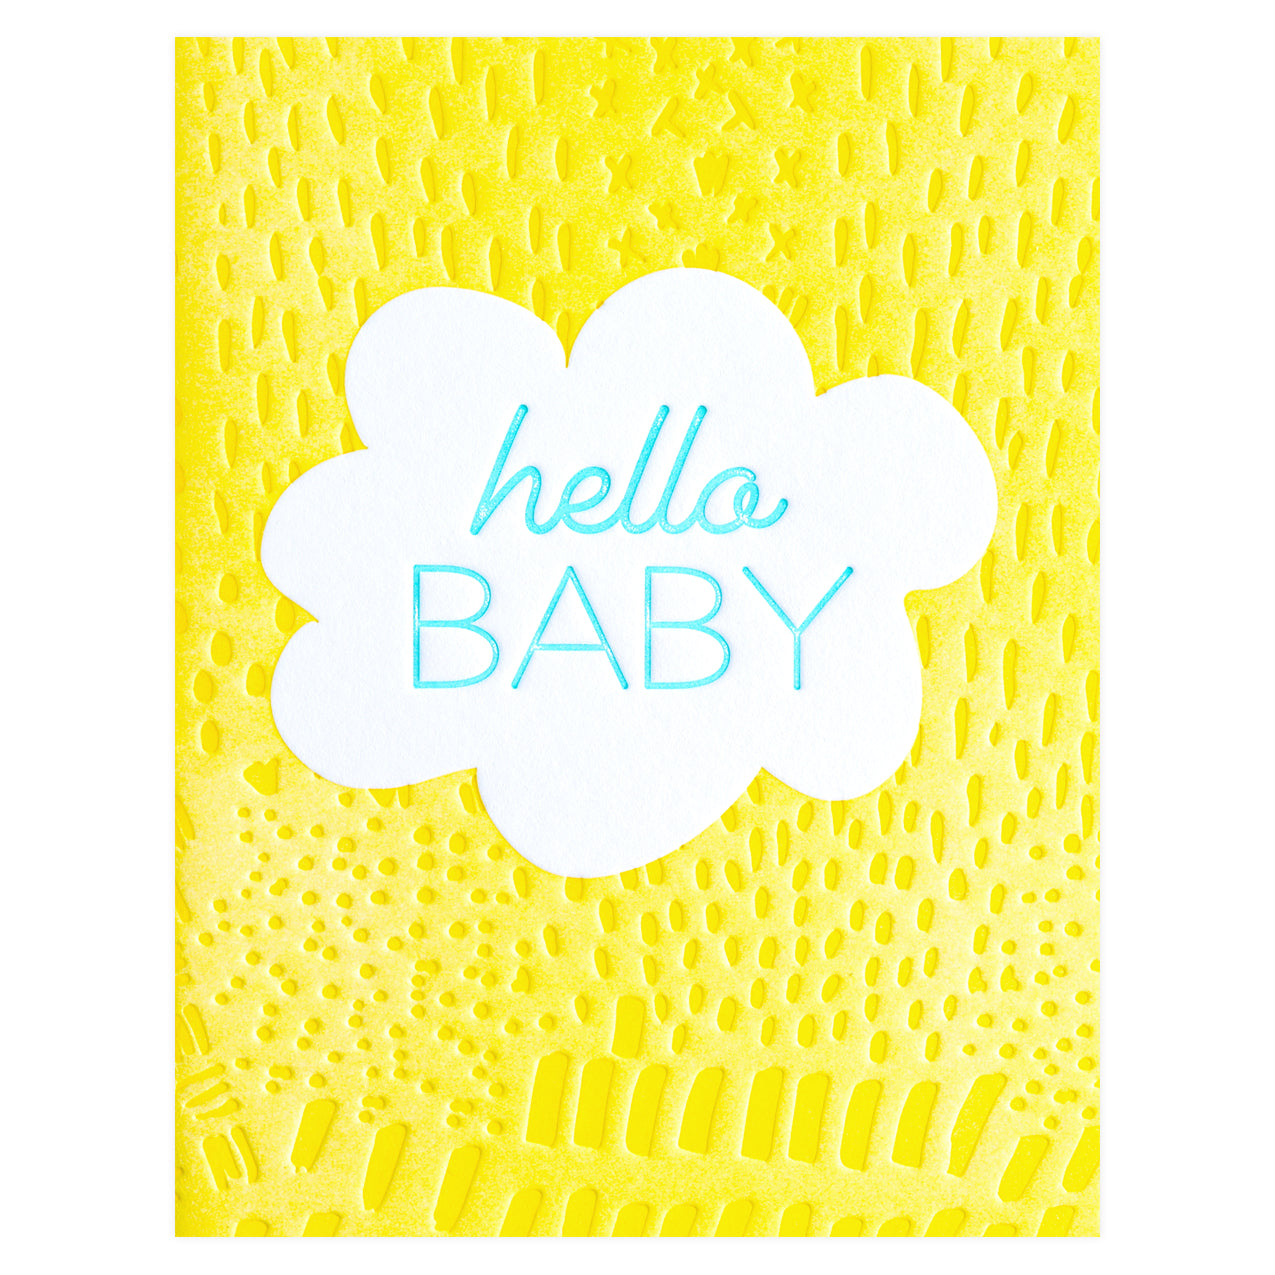 Elum sun peak new baby greeting card greer chicago sun peak new baby greeting card elum greer chicago m4hsunfo